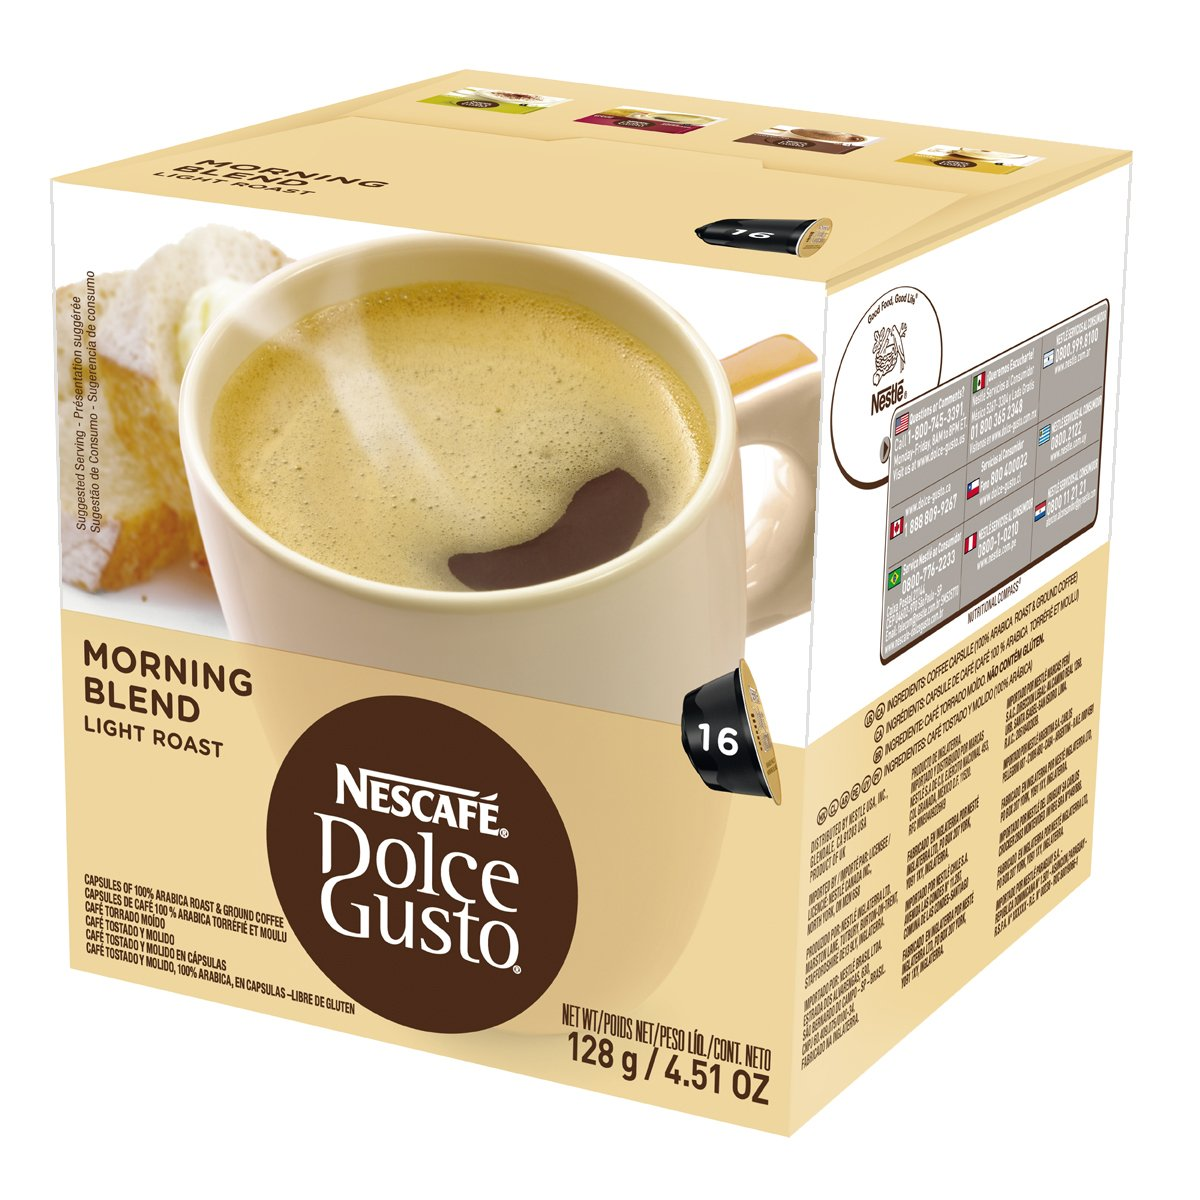 Amazon.com : Nescafe Dolce Gusto for Nescafe Dolce Gusto Brewers, Vanilla Latte Macchiato, 16 Count : Coffee Brewing Machine Capsules : Grocery & Gourmet ...